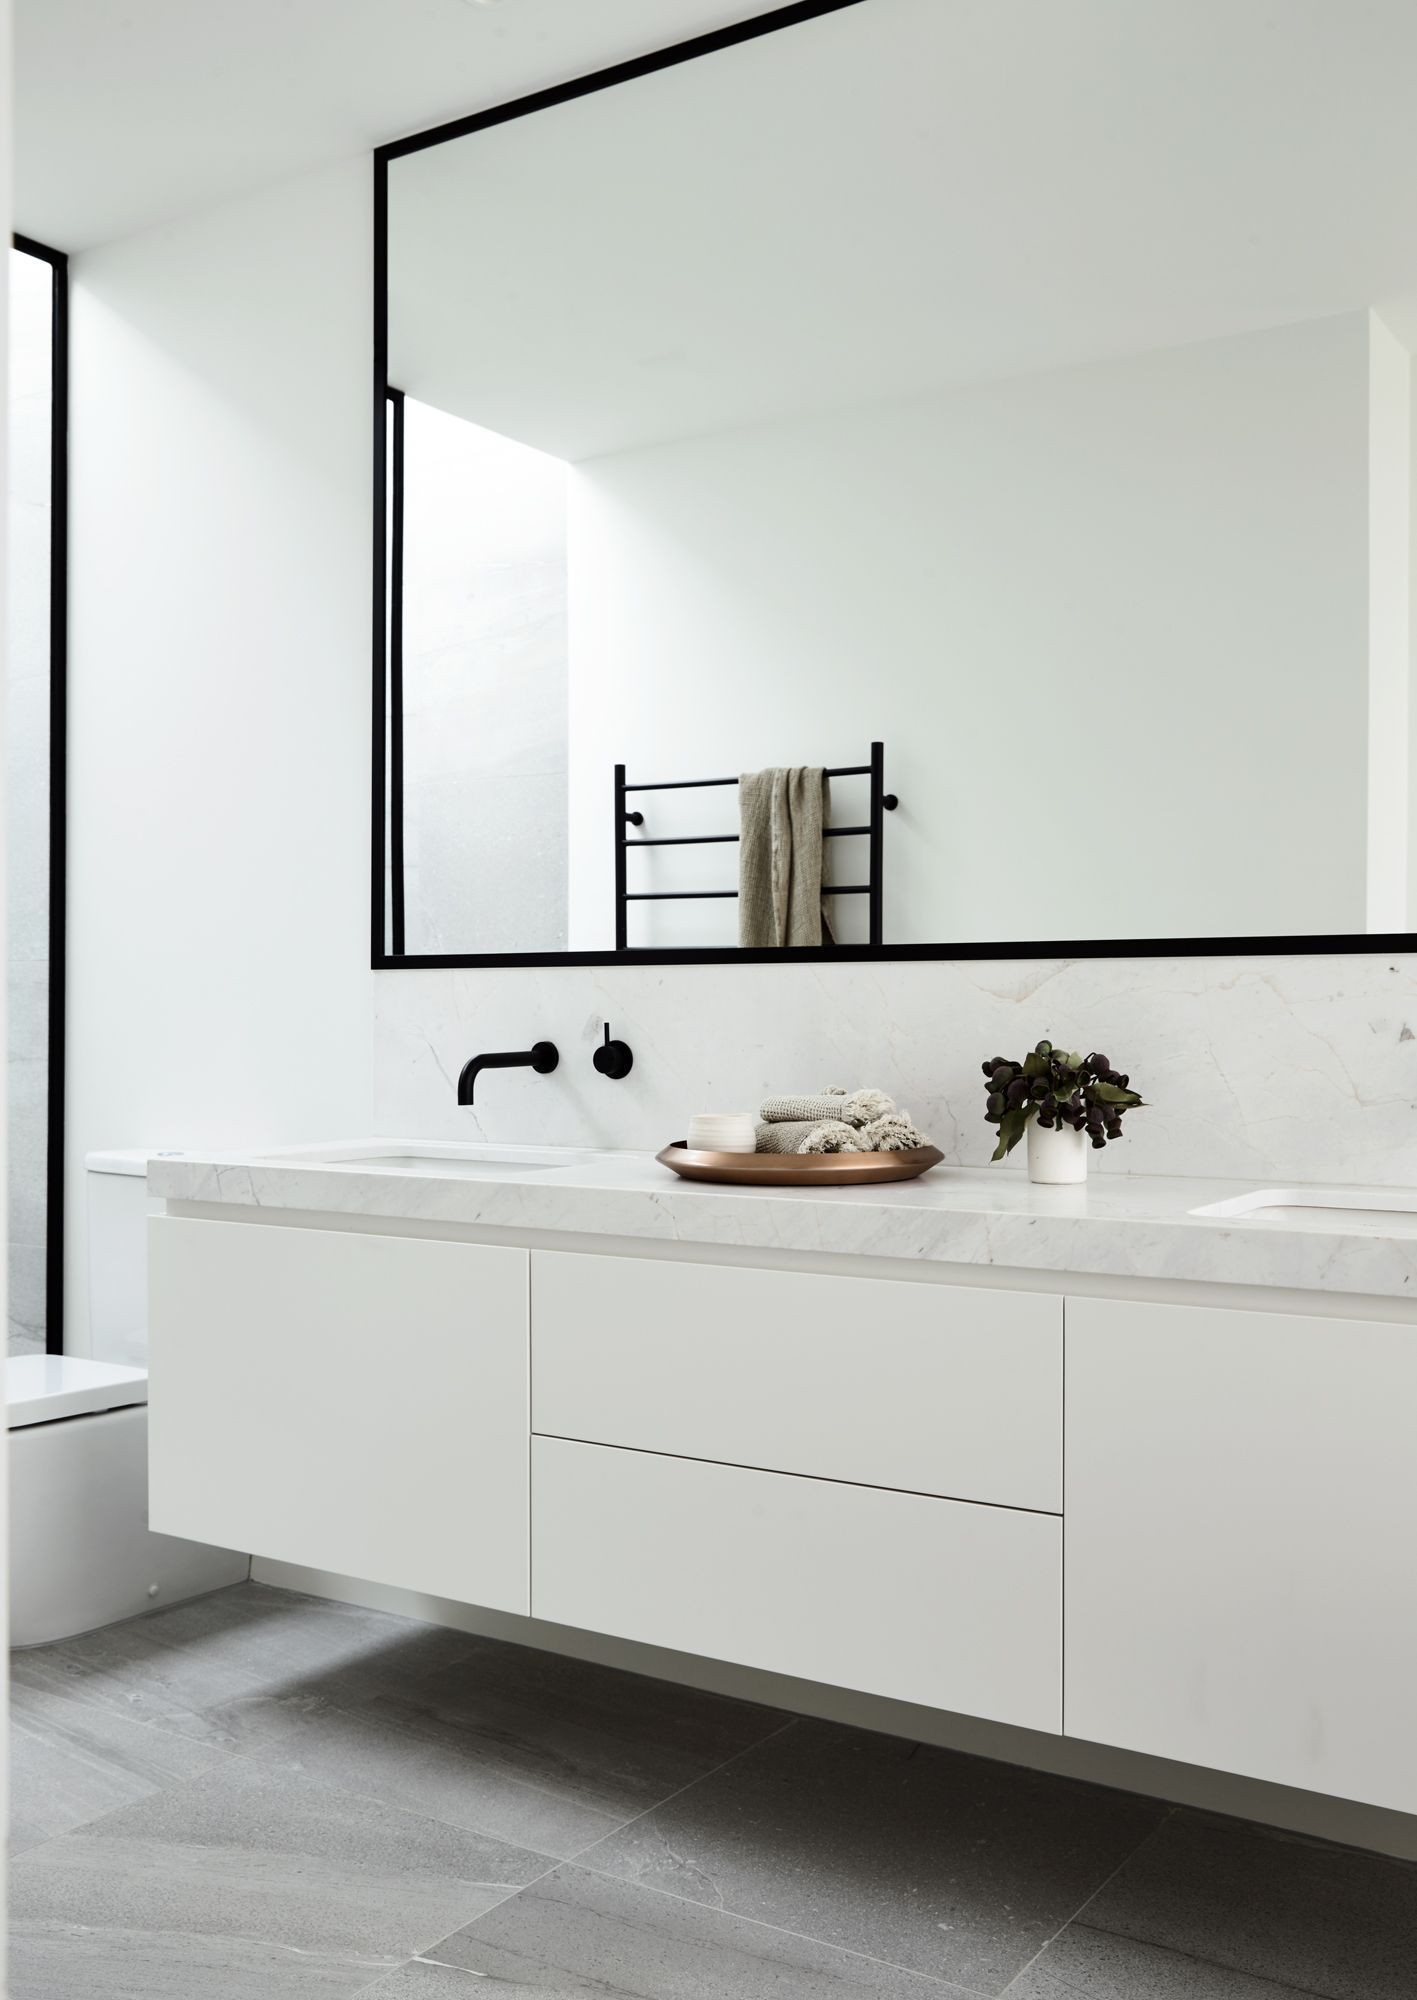 COCOON black bathroom taps bycocoon.com | black taps inspiration ...